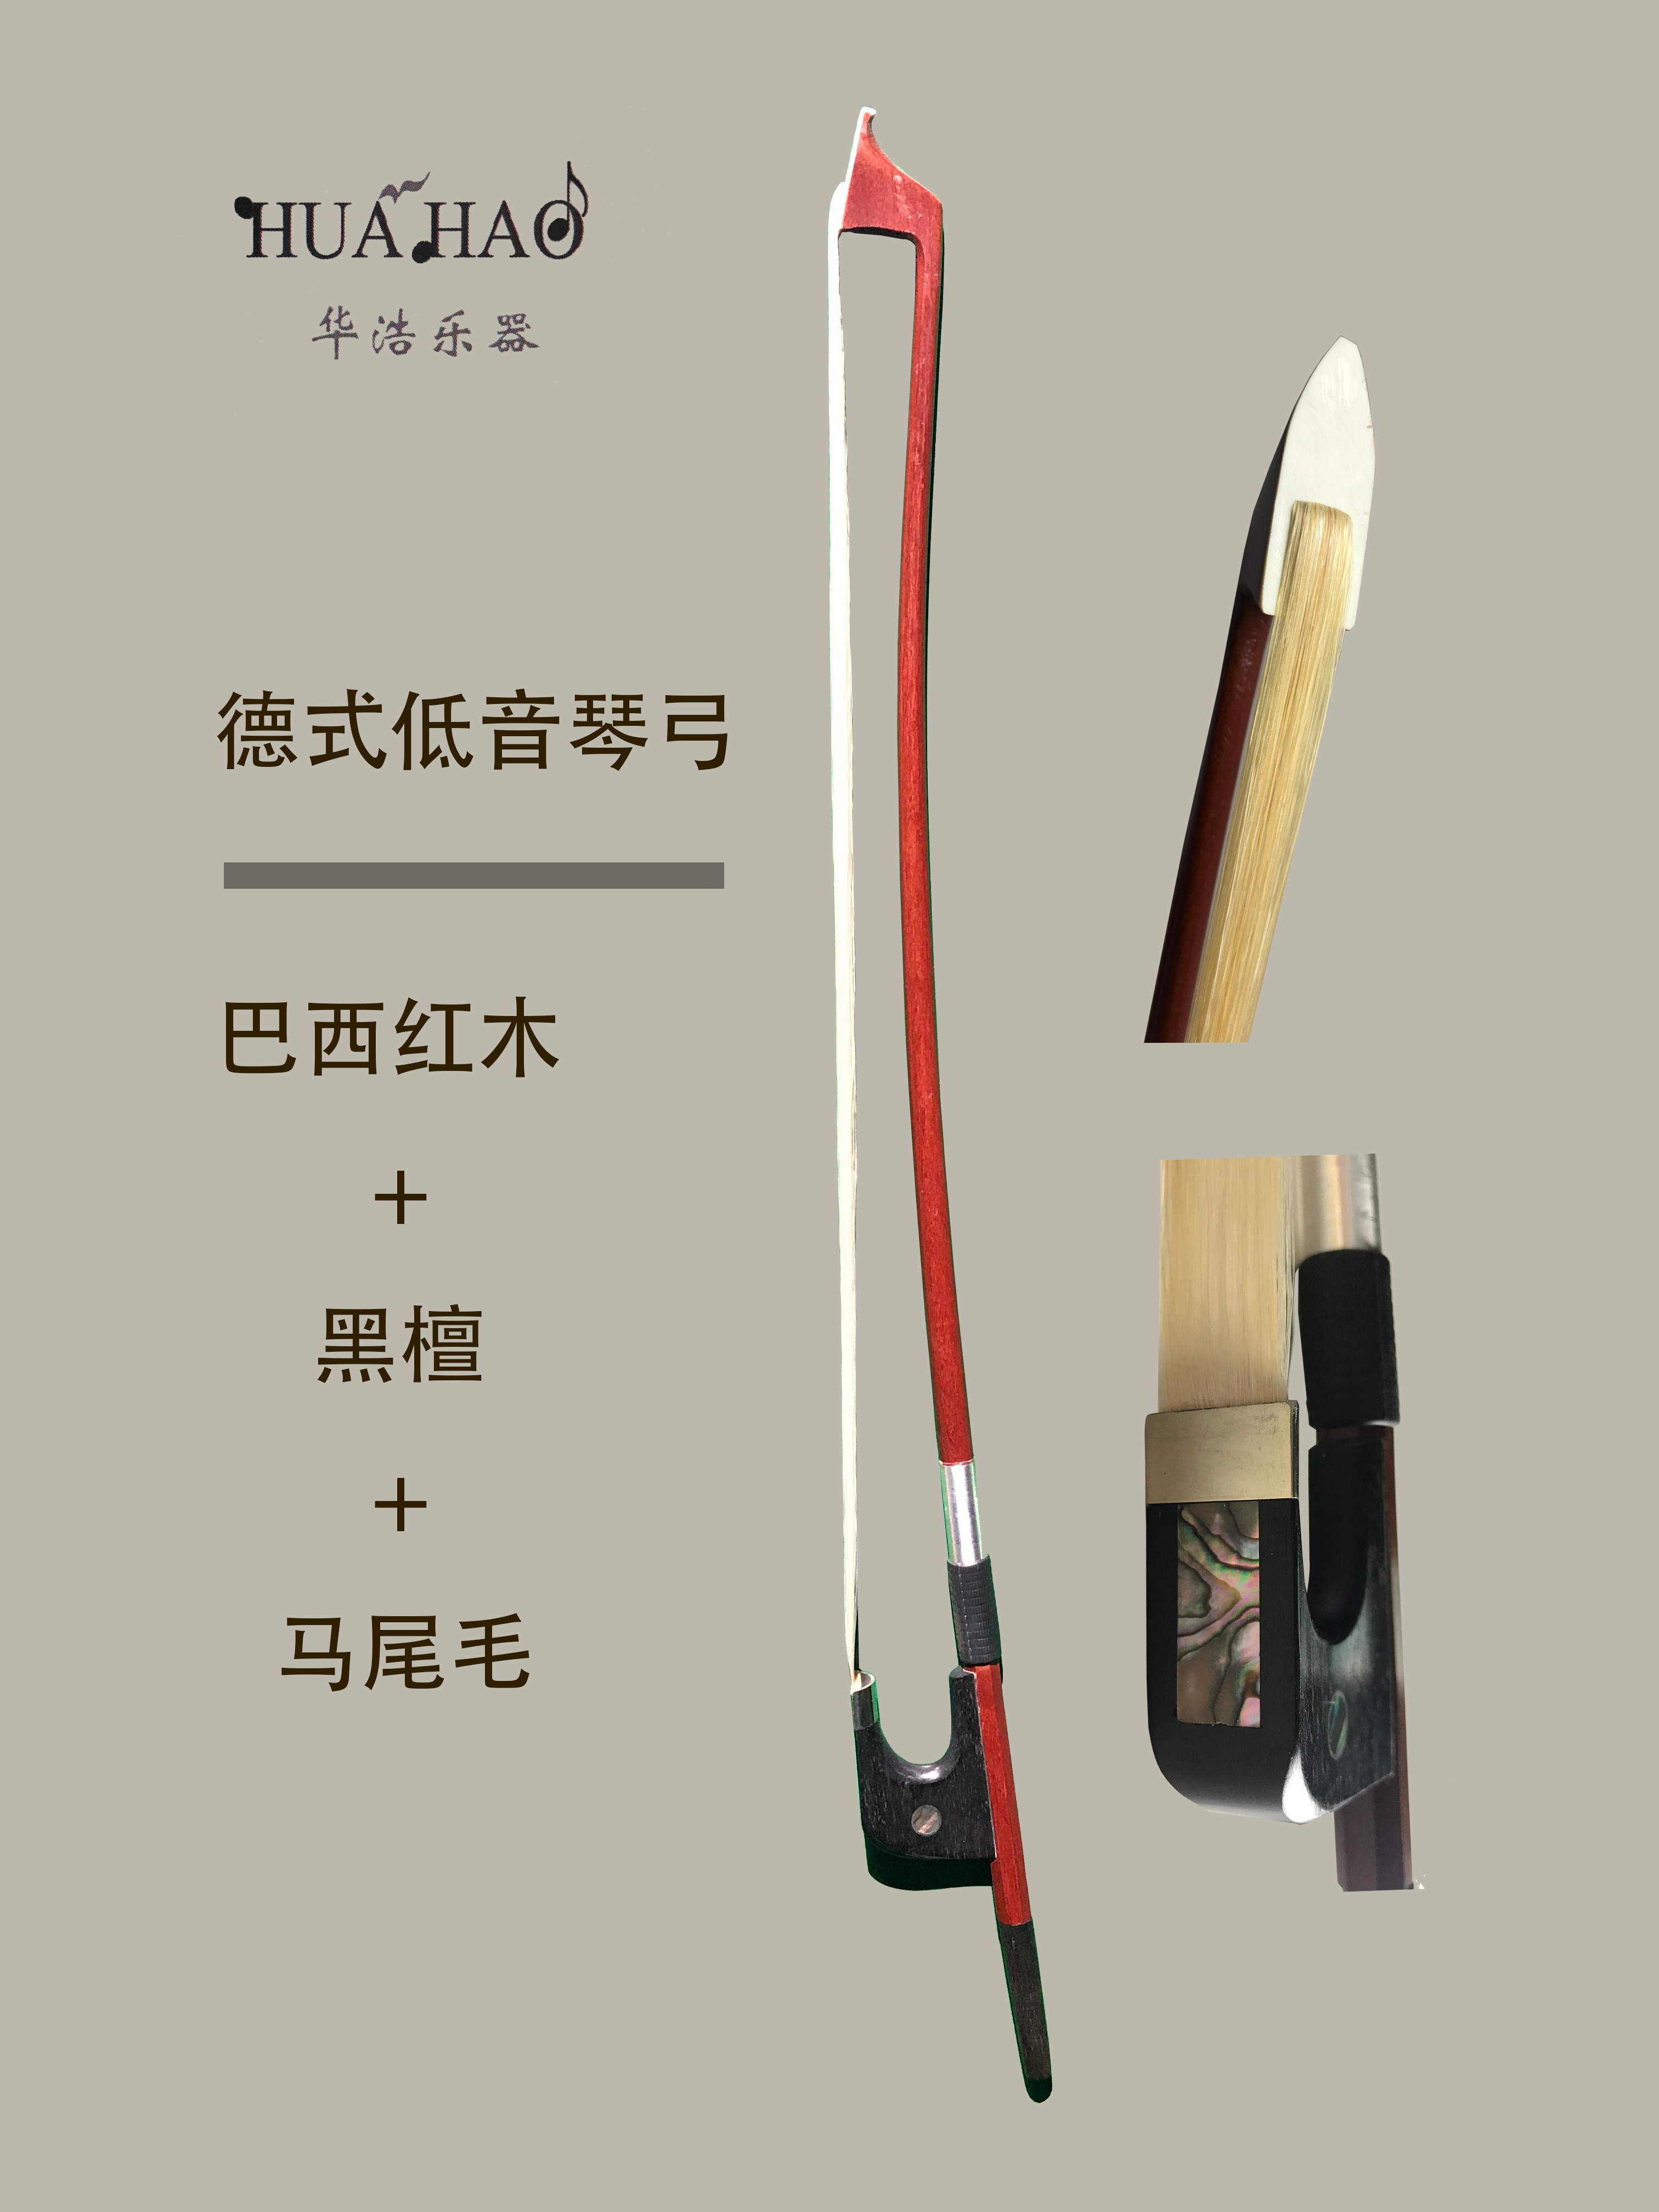 A set 4/4 1/4 1/2 3/4 Cello Part Include :Cello Bow /Tailpiece/ Bridge/ Strings/Tuning Pegs Cello Accessories enlarge